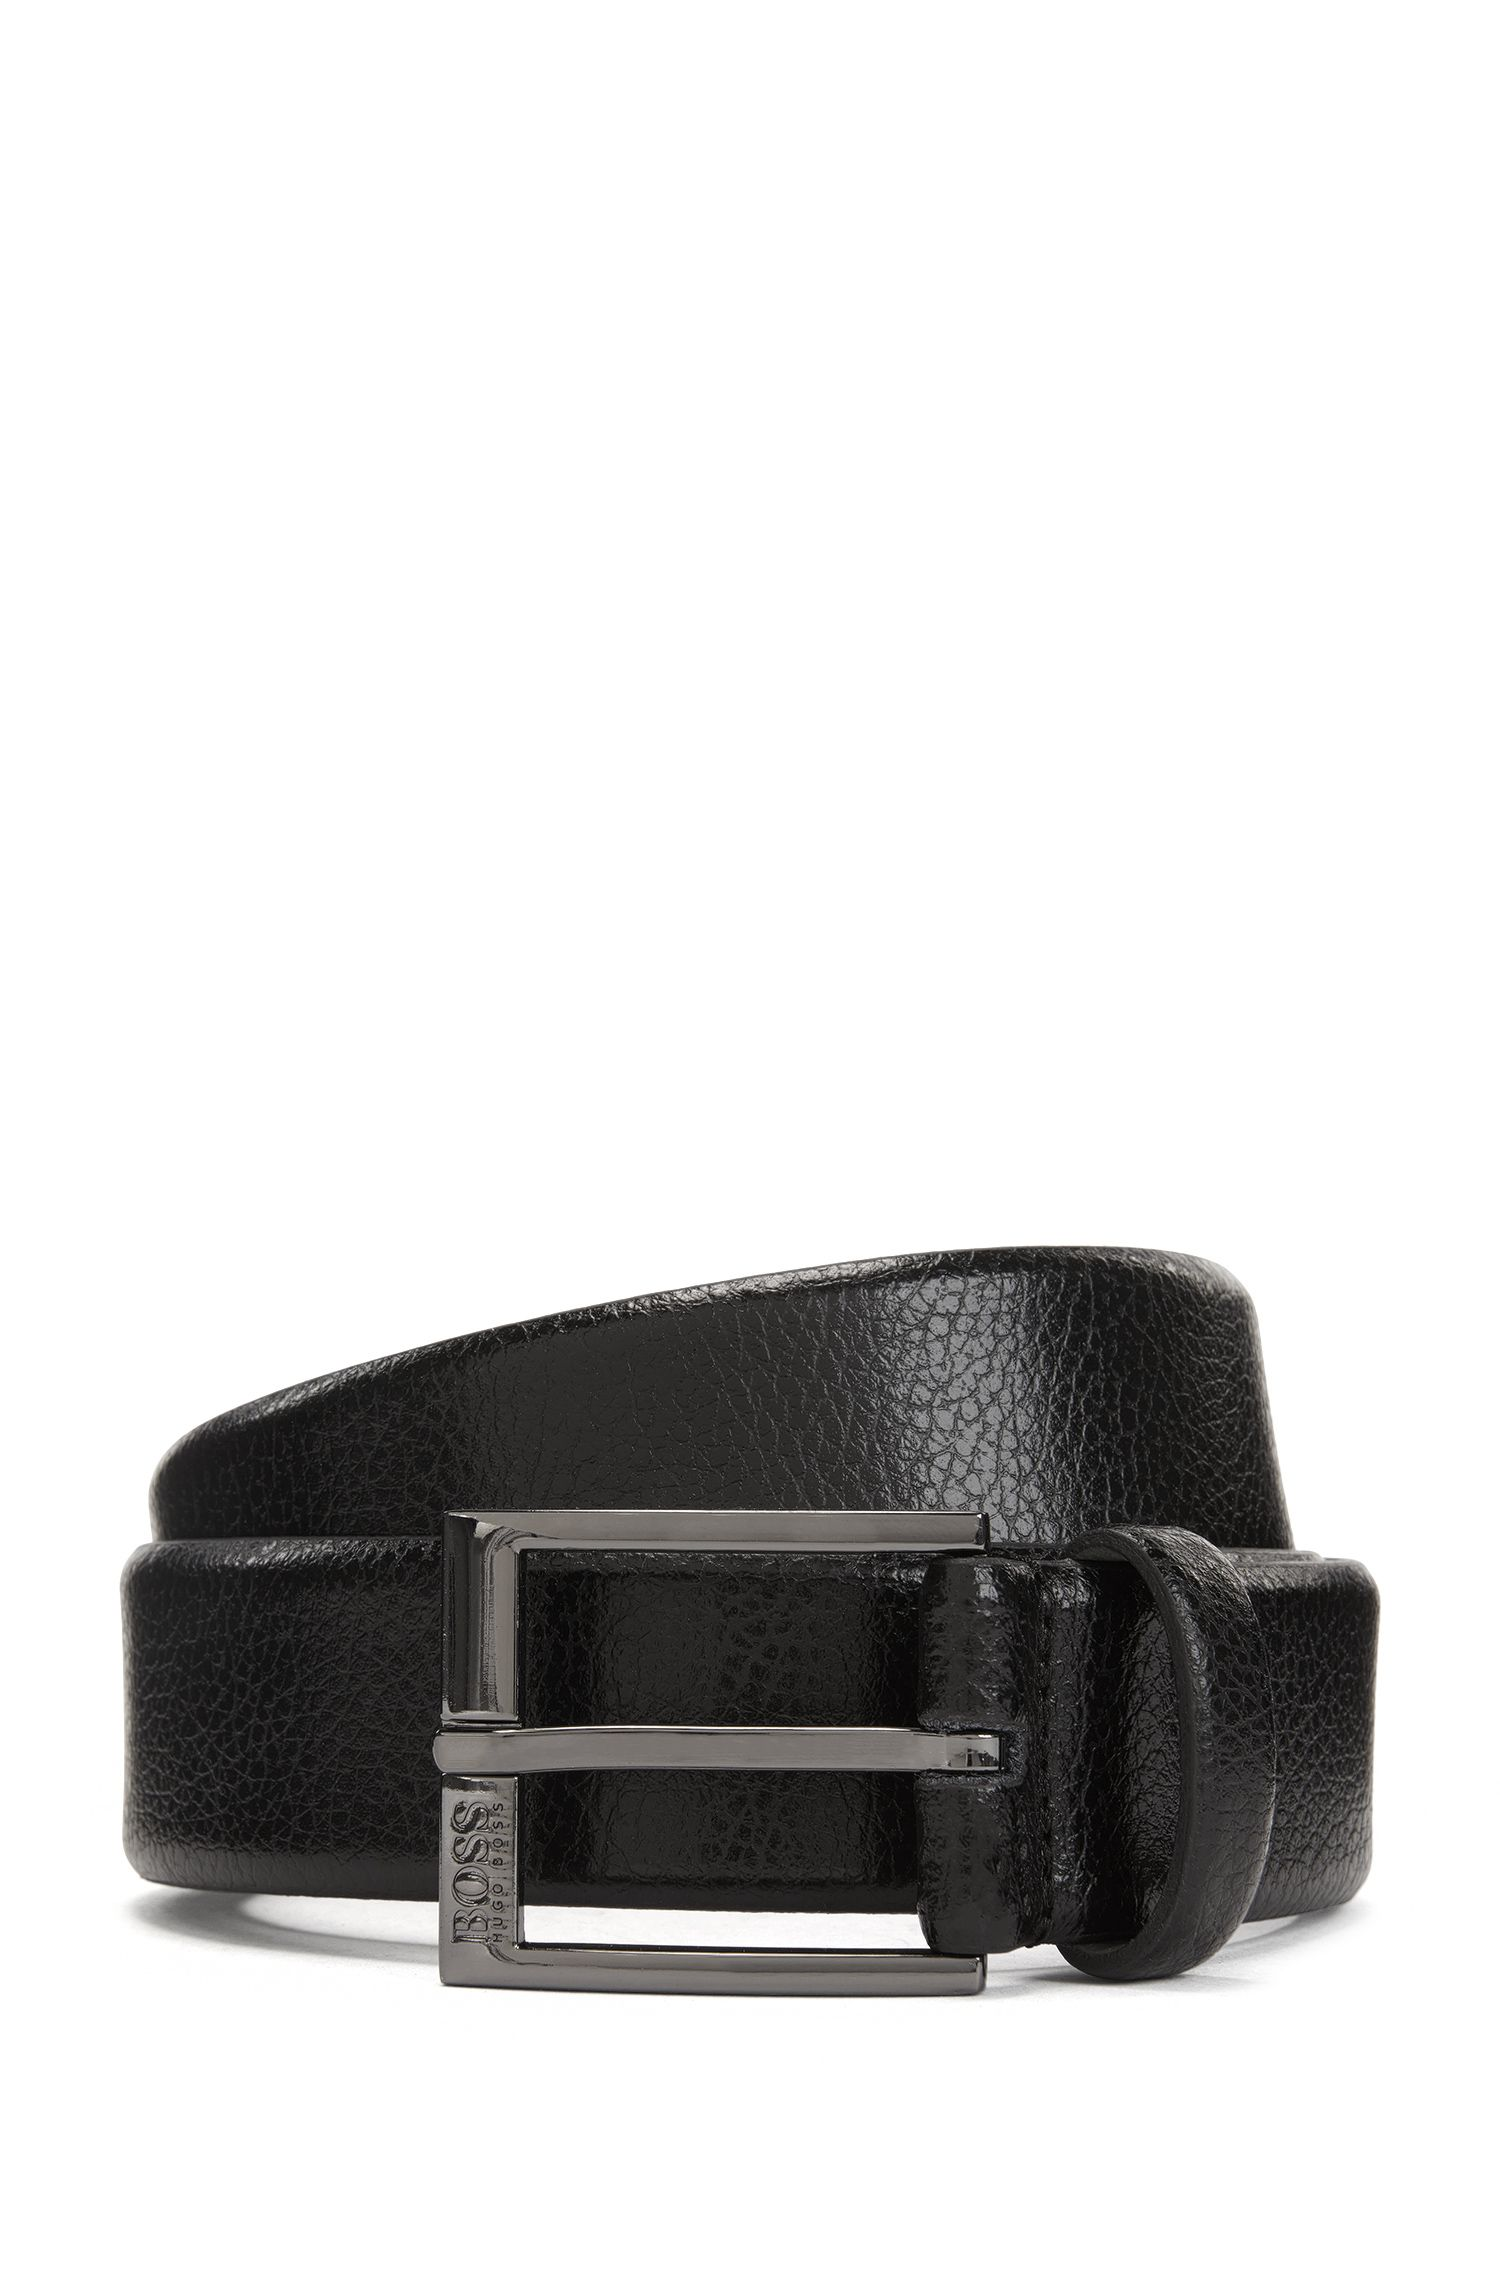 Leather belt with embossed grain